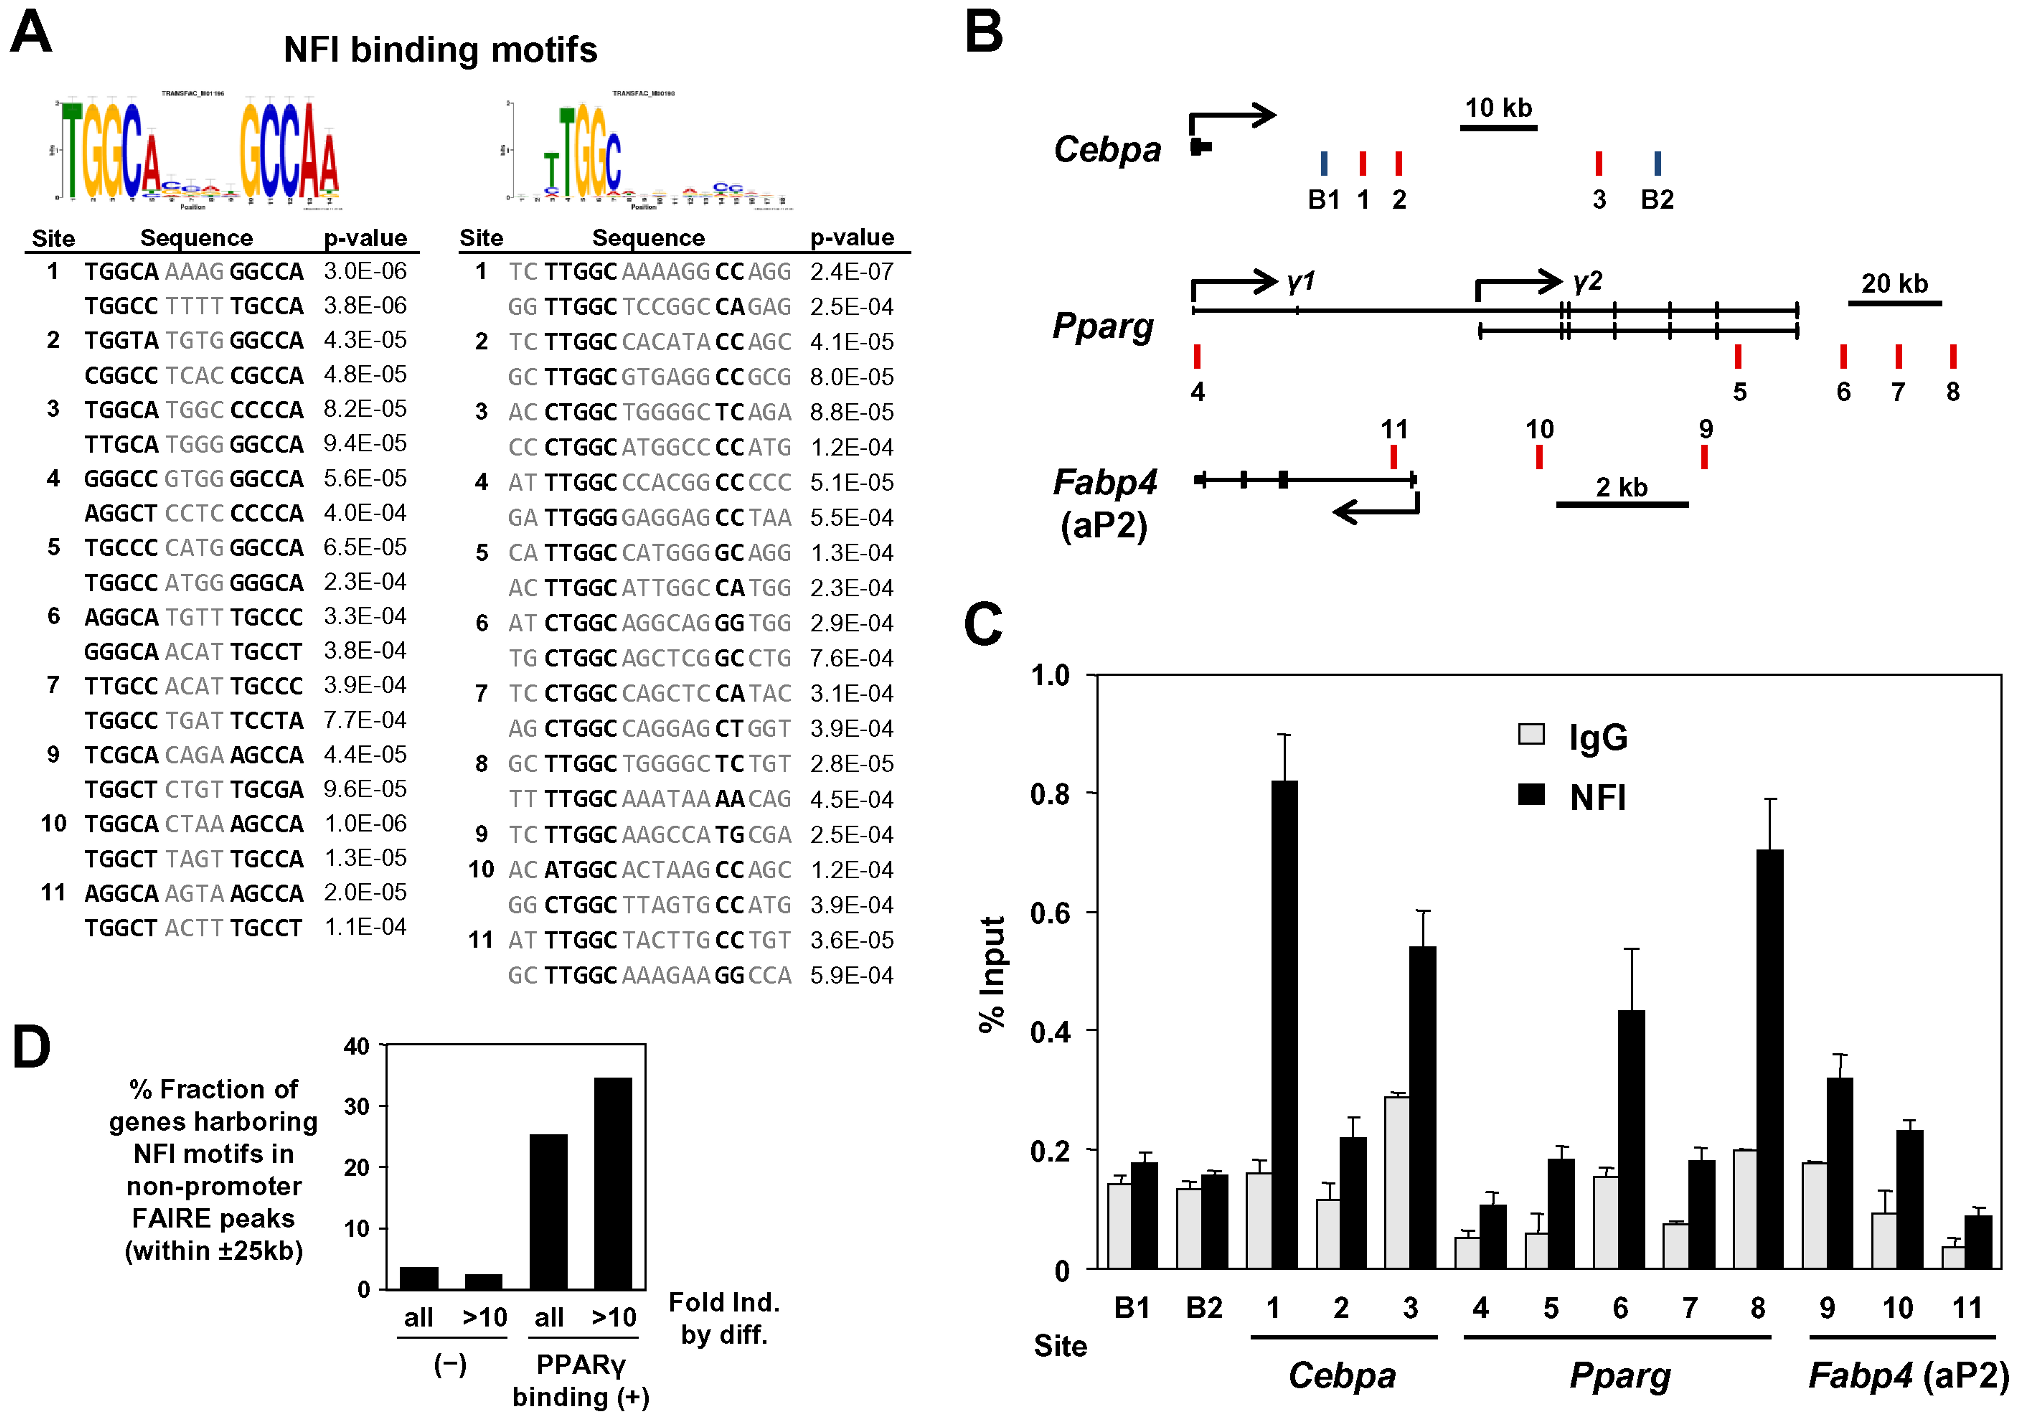 NFI occupy the adipocyte-specific FAIRE peaks and/or the PPARγ binding sites near PPARγ, C/EBPα, and aP2 genes.